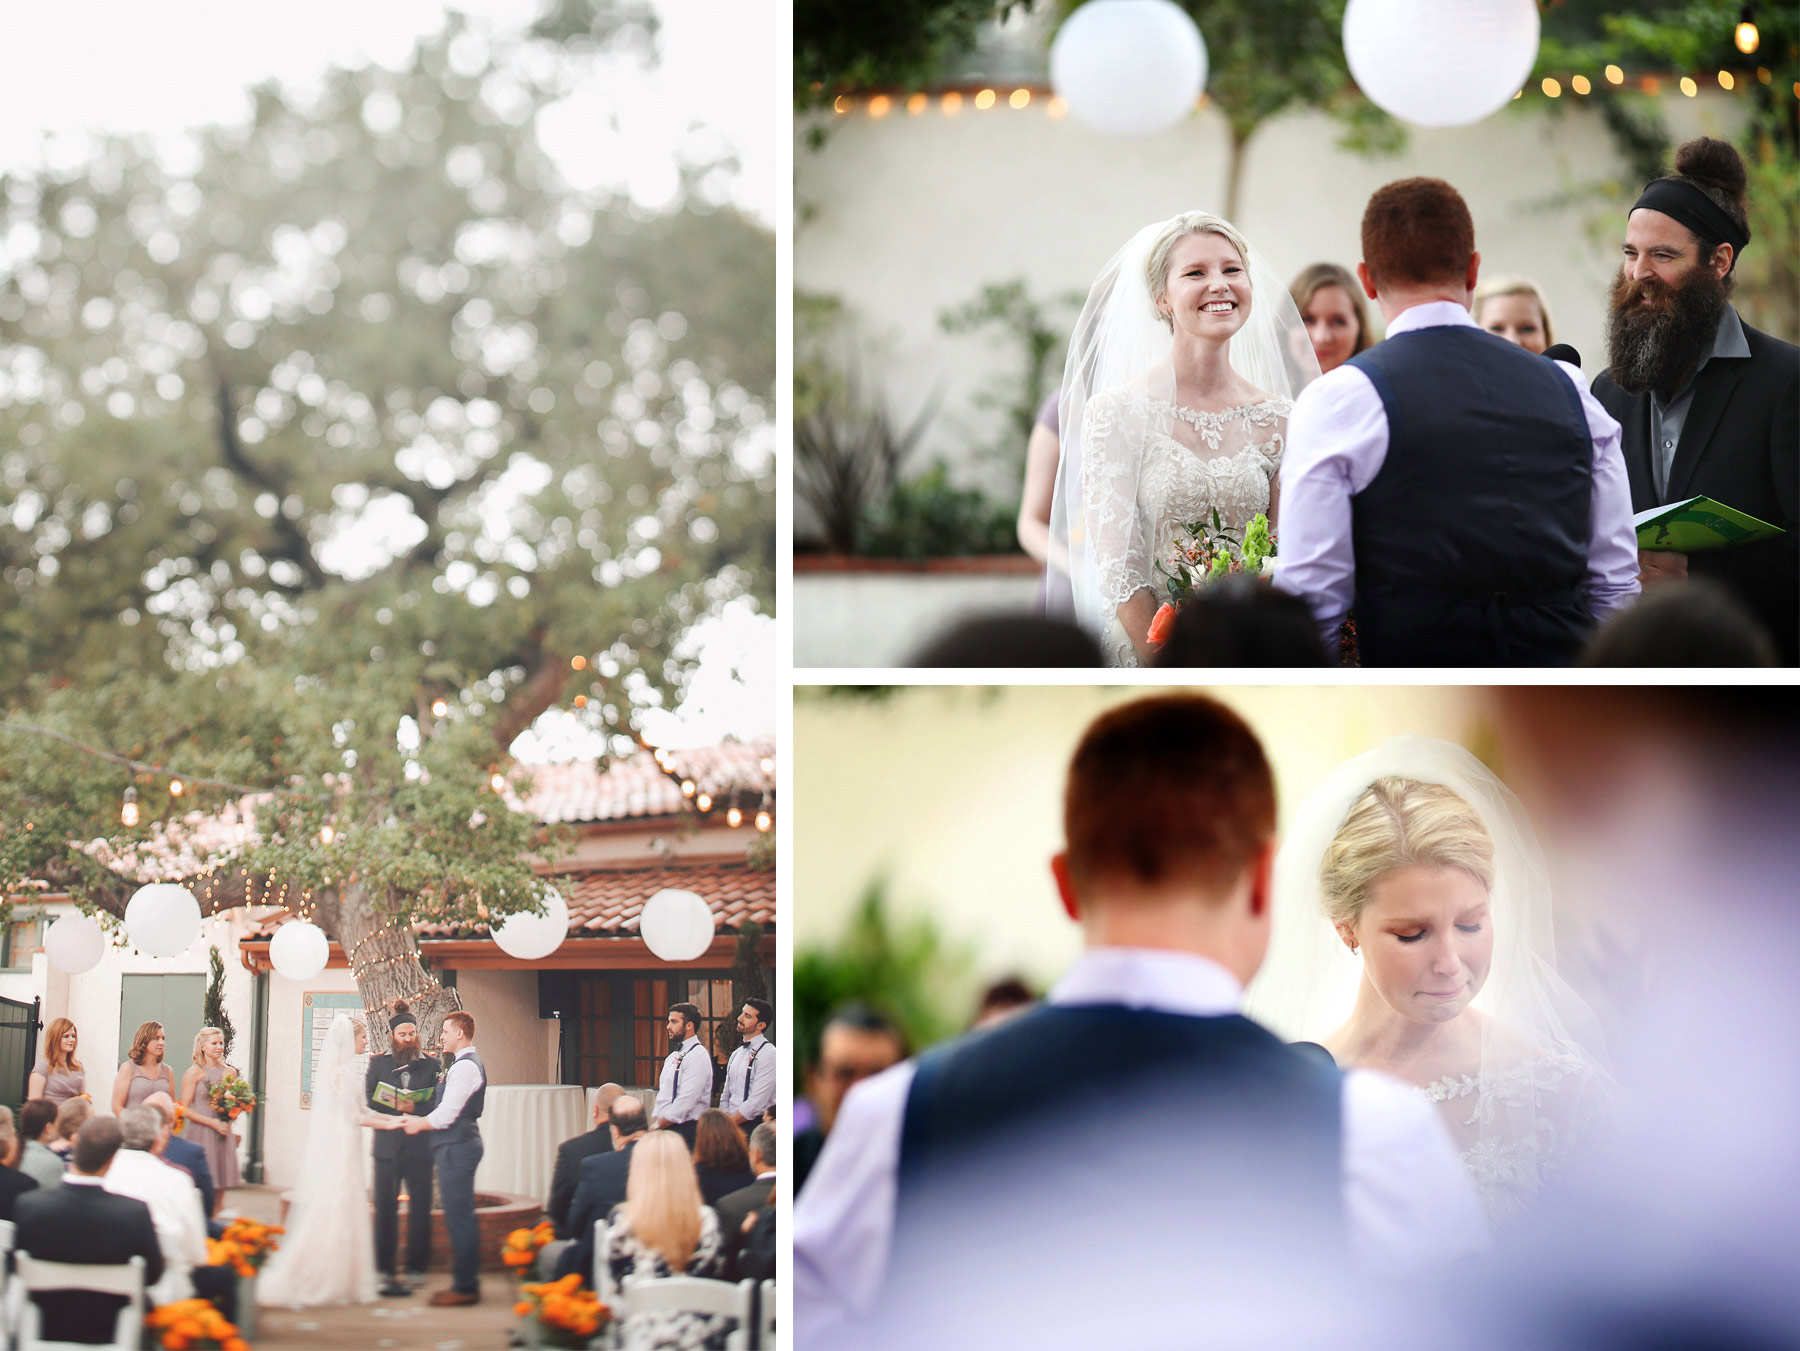 07-La-Canada-Flintridge-California-Wedding-Photographer-by-Andrew-Vick-Photography-Fall-Autumn-Destination-Ceremony-Bride-Groom-Vows-Childrens-Book-Giving-Tree-Vintage-Fawn-and-Jay.jpg